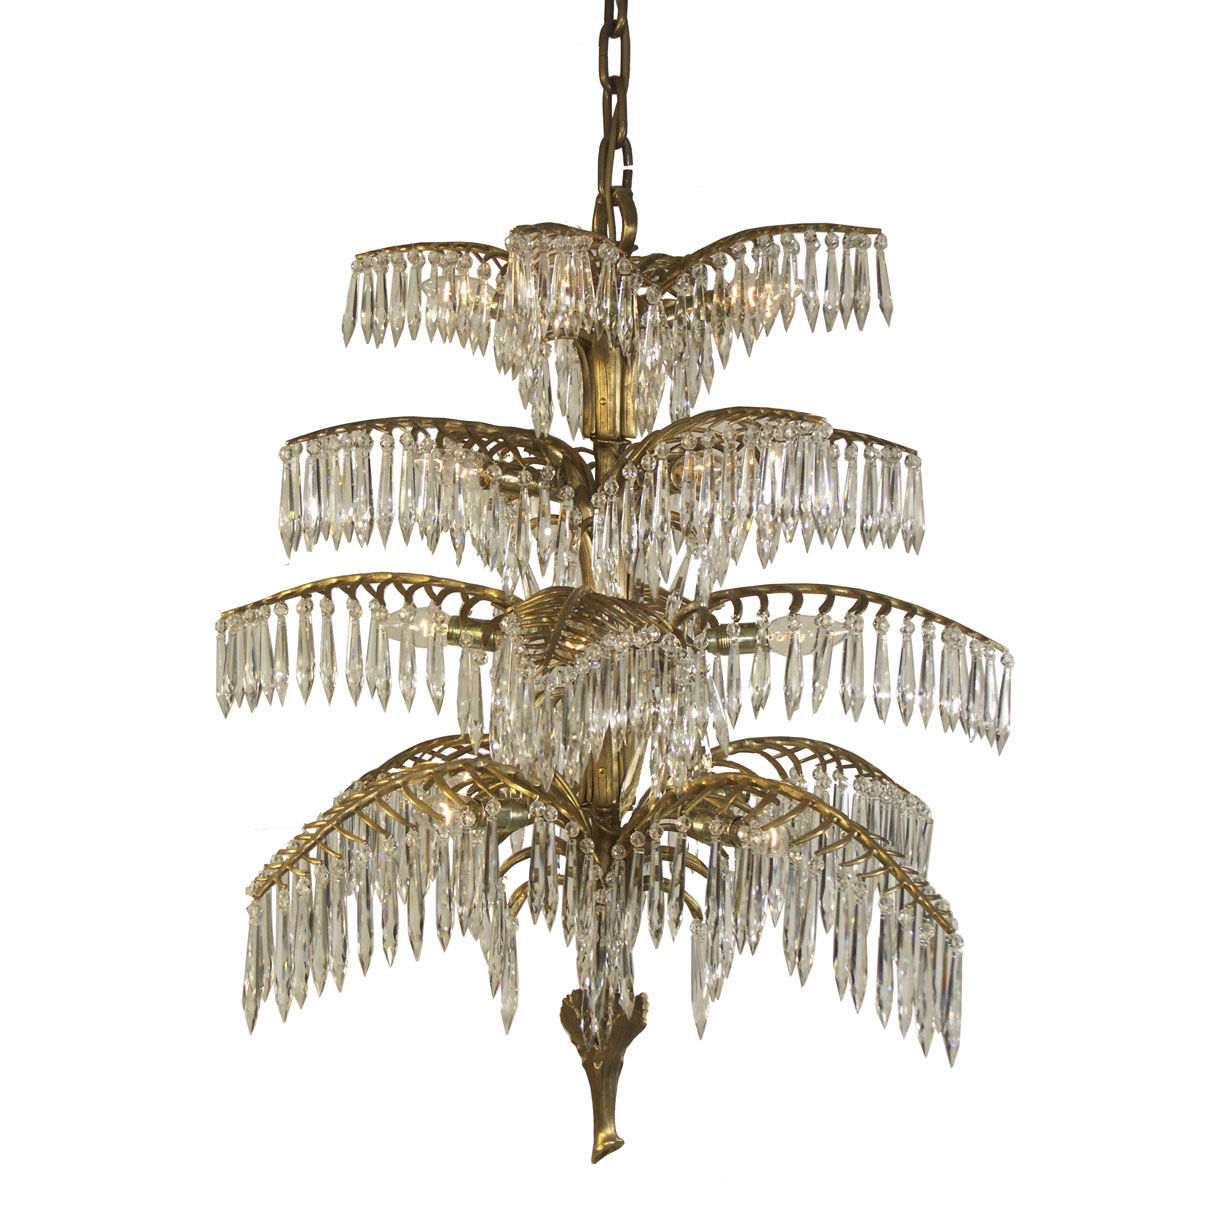 Traditional chandelier crystal brass handmade PALME 20332 – Traditional Chandelier